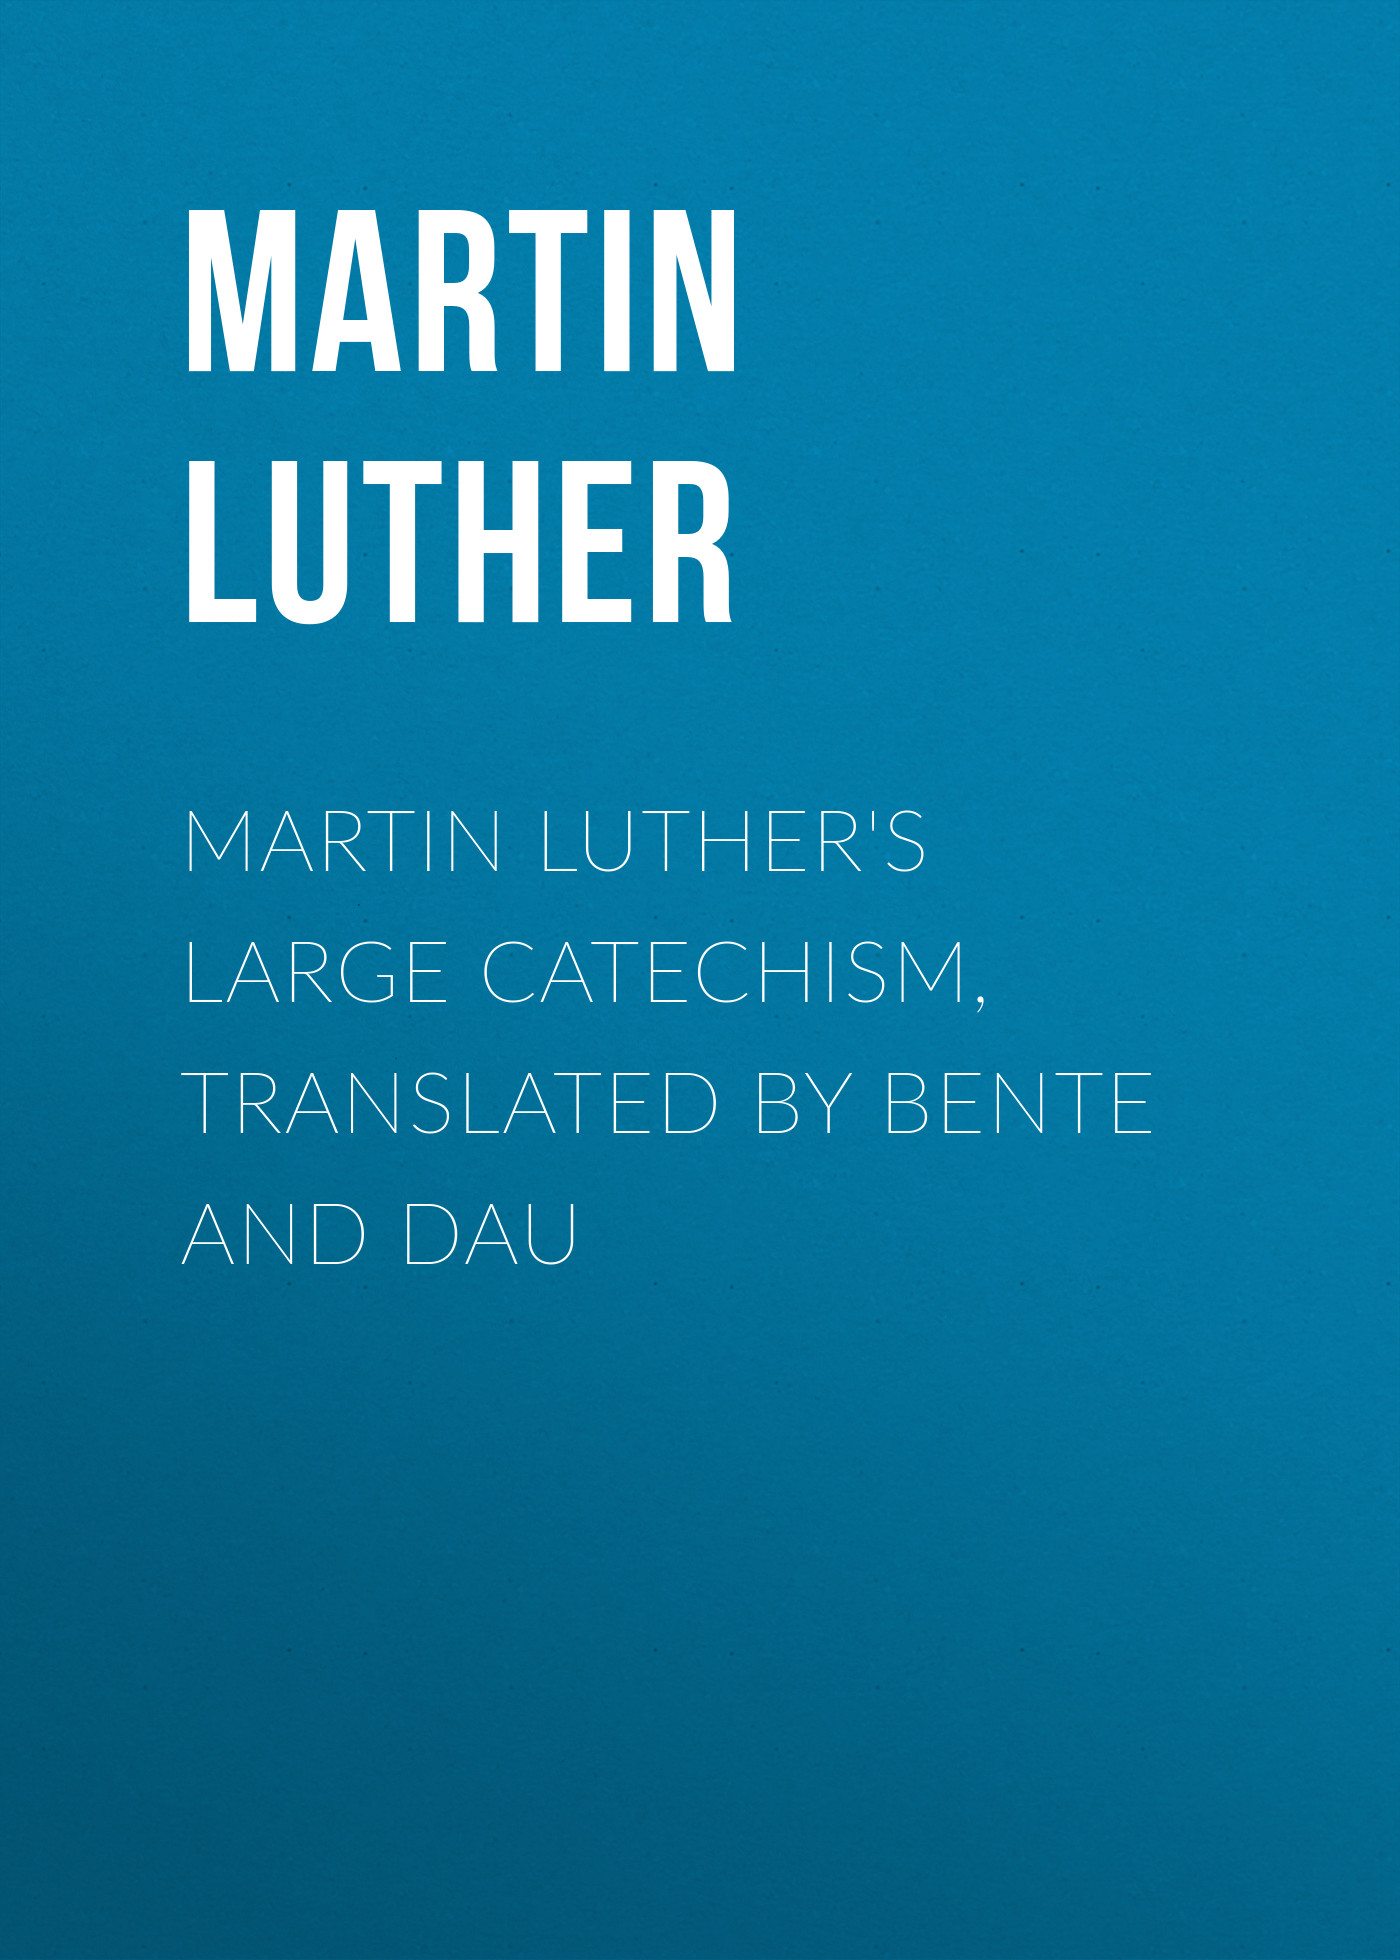 Martin Luther Martin Luther's Large Catechism, translated by Bente and Dau ботинки martin pescatore